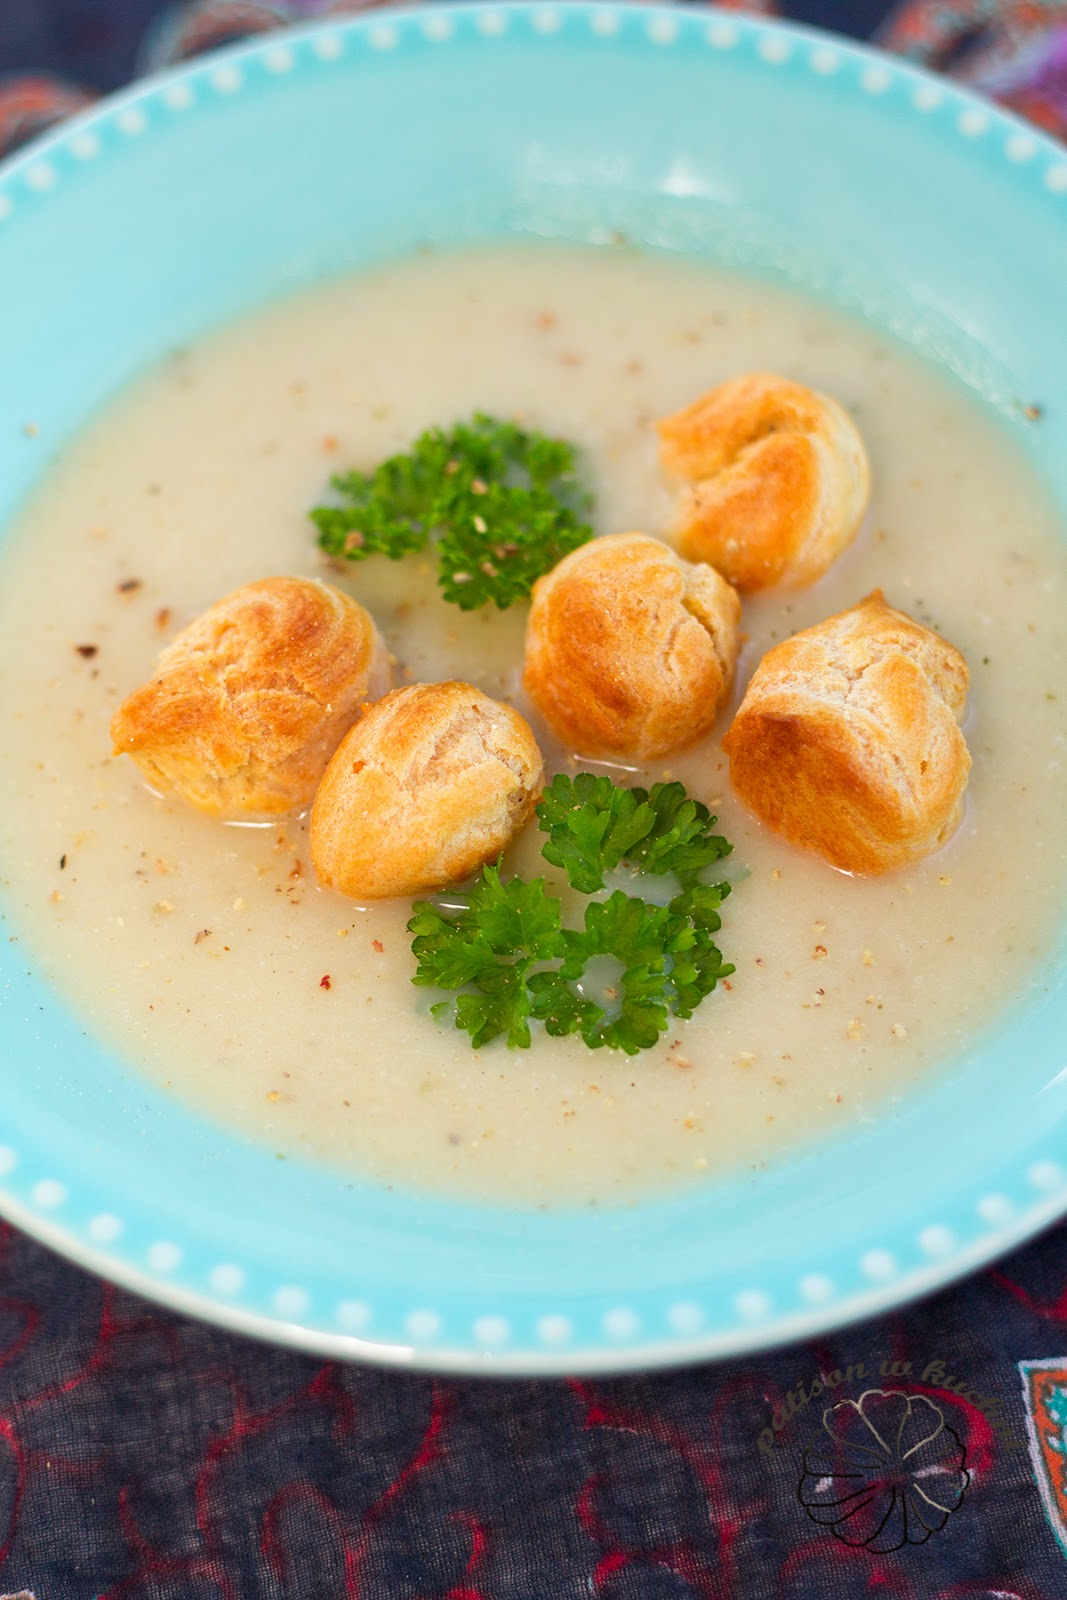 Cream of celery with choux pastry balls.